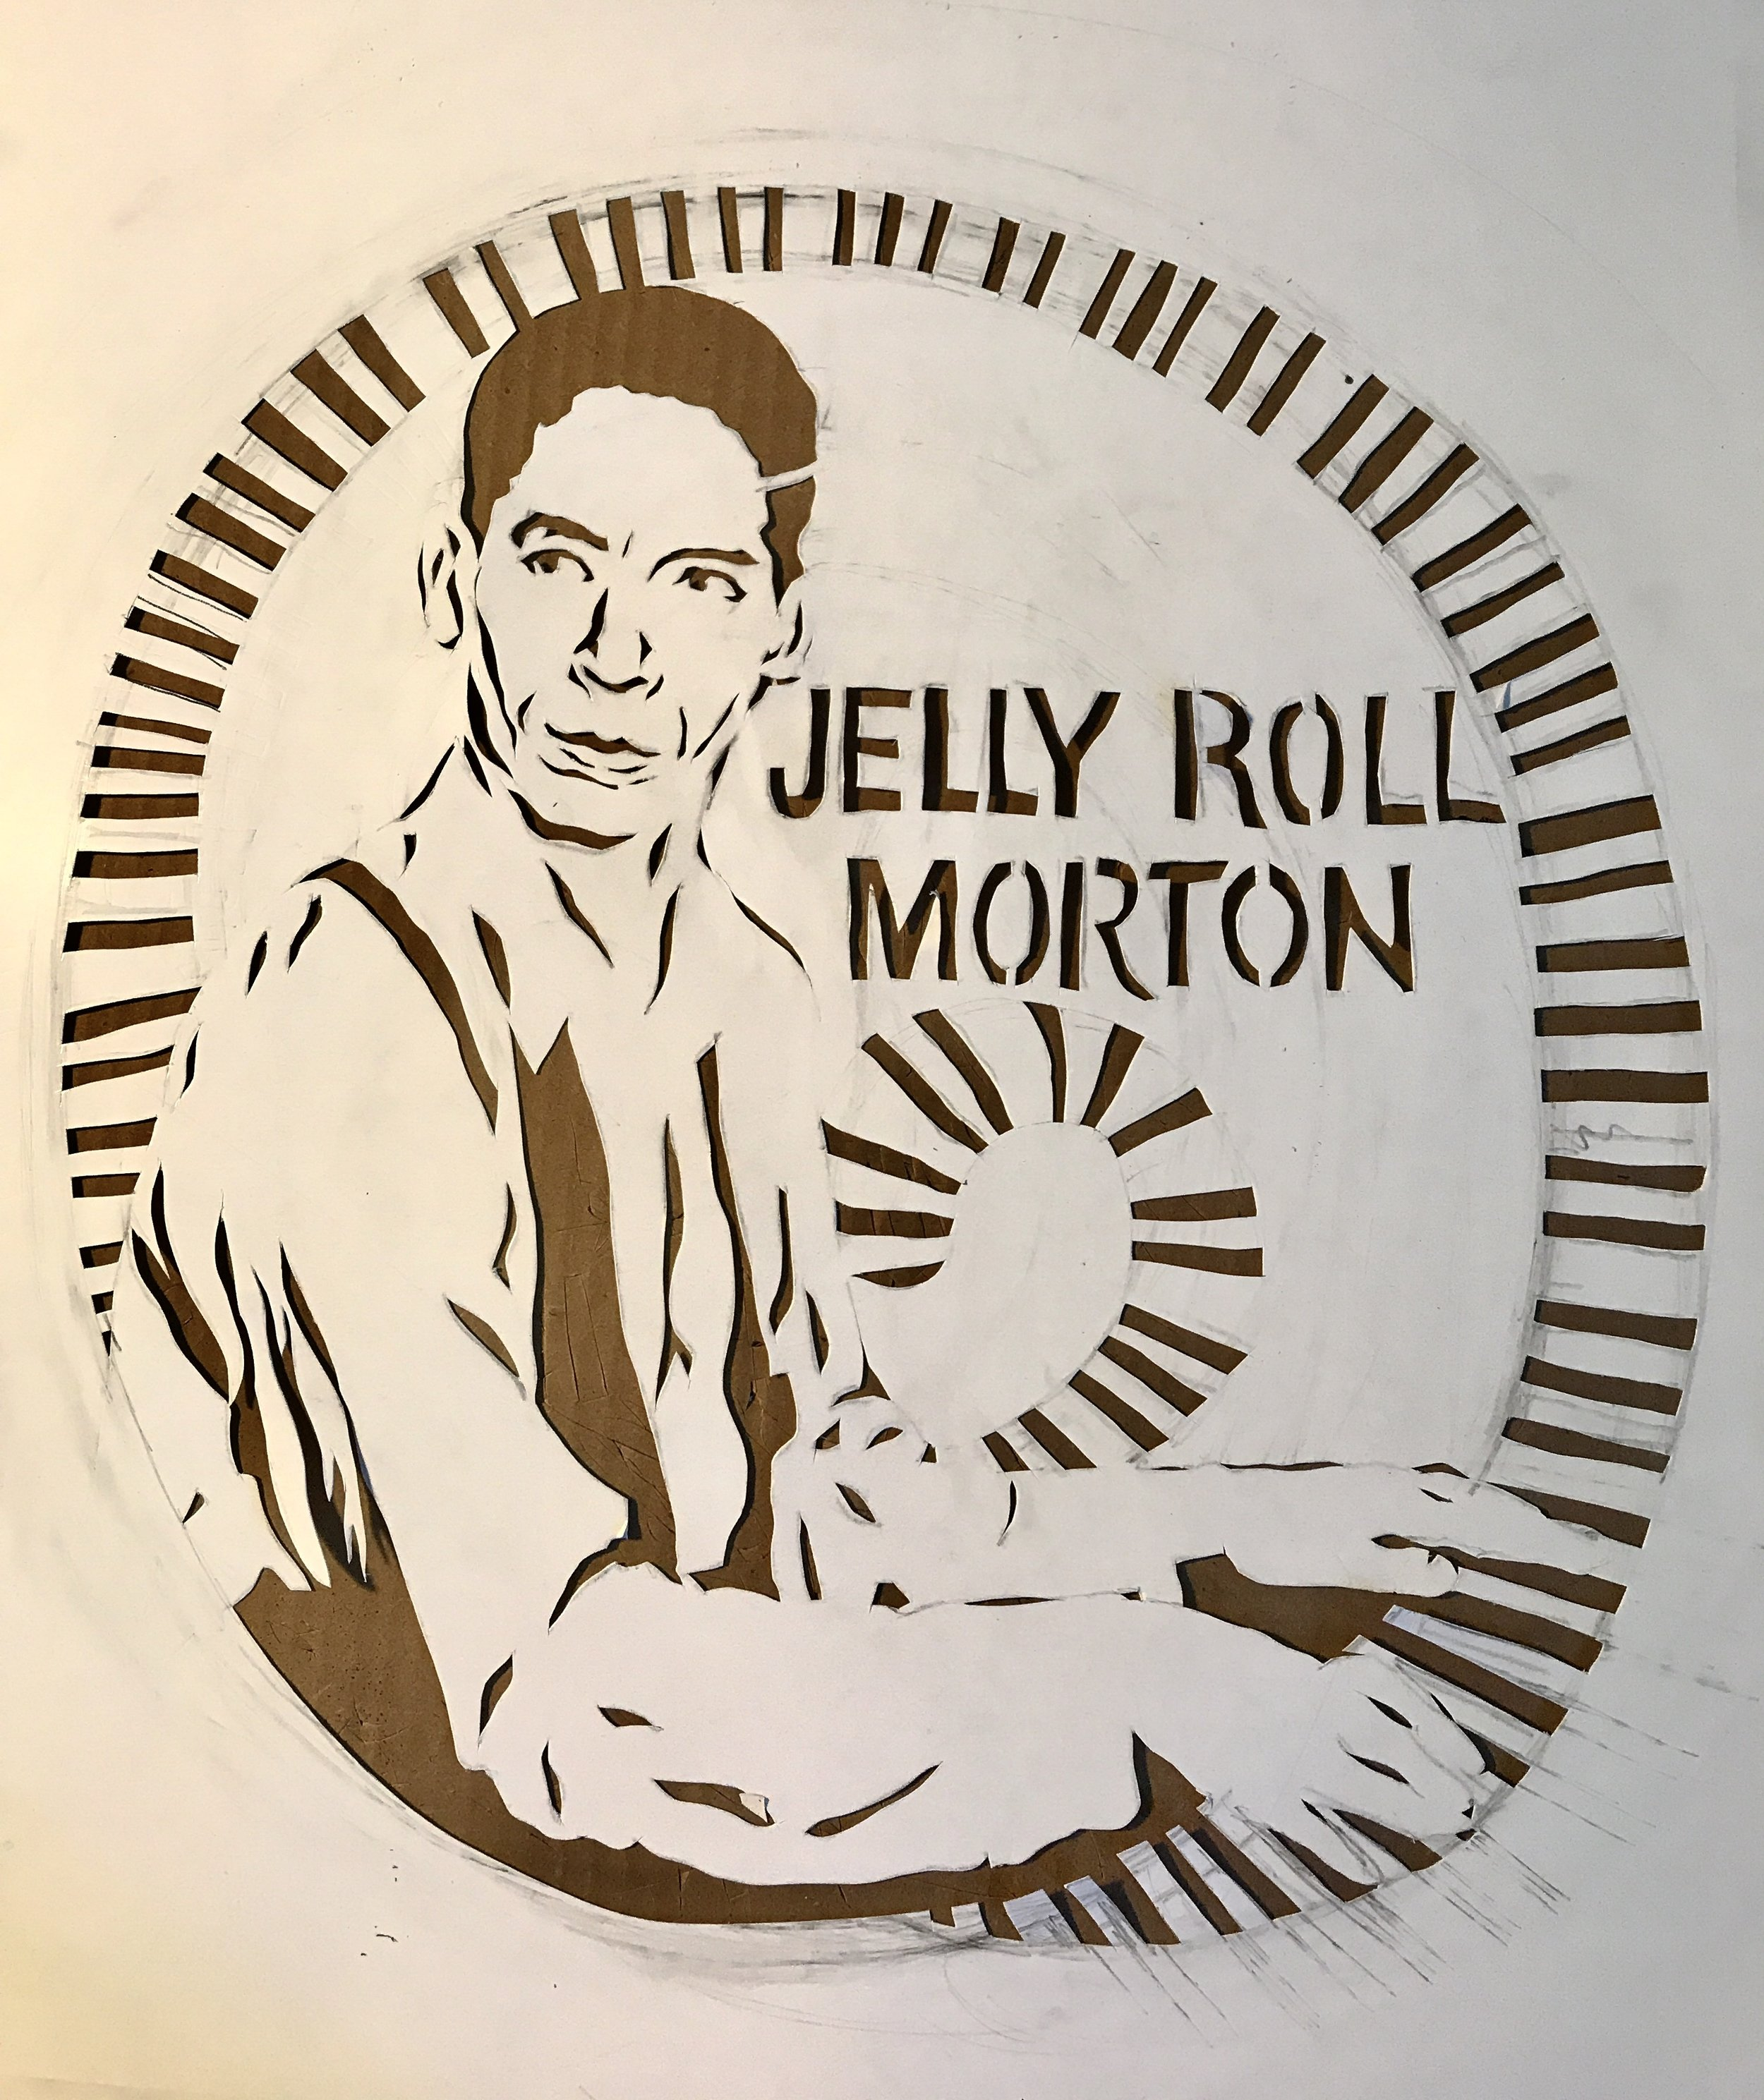 - Hand-cut stencil for the Jelly Roll Morton tee